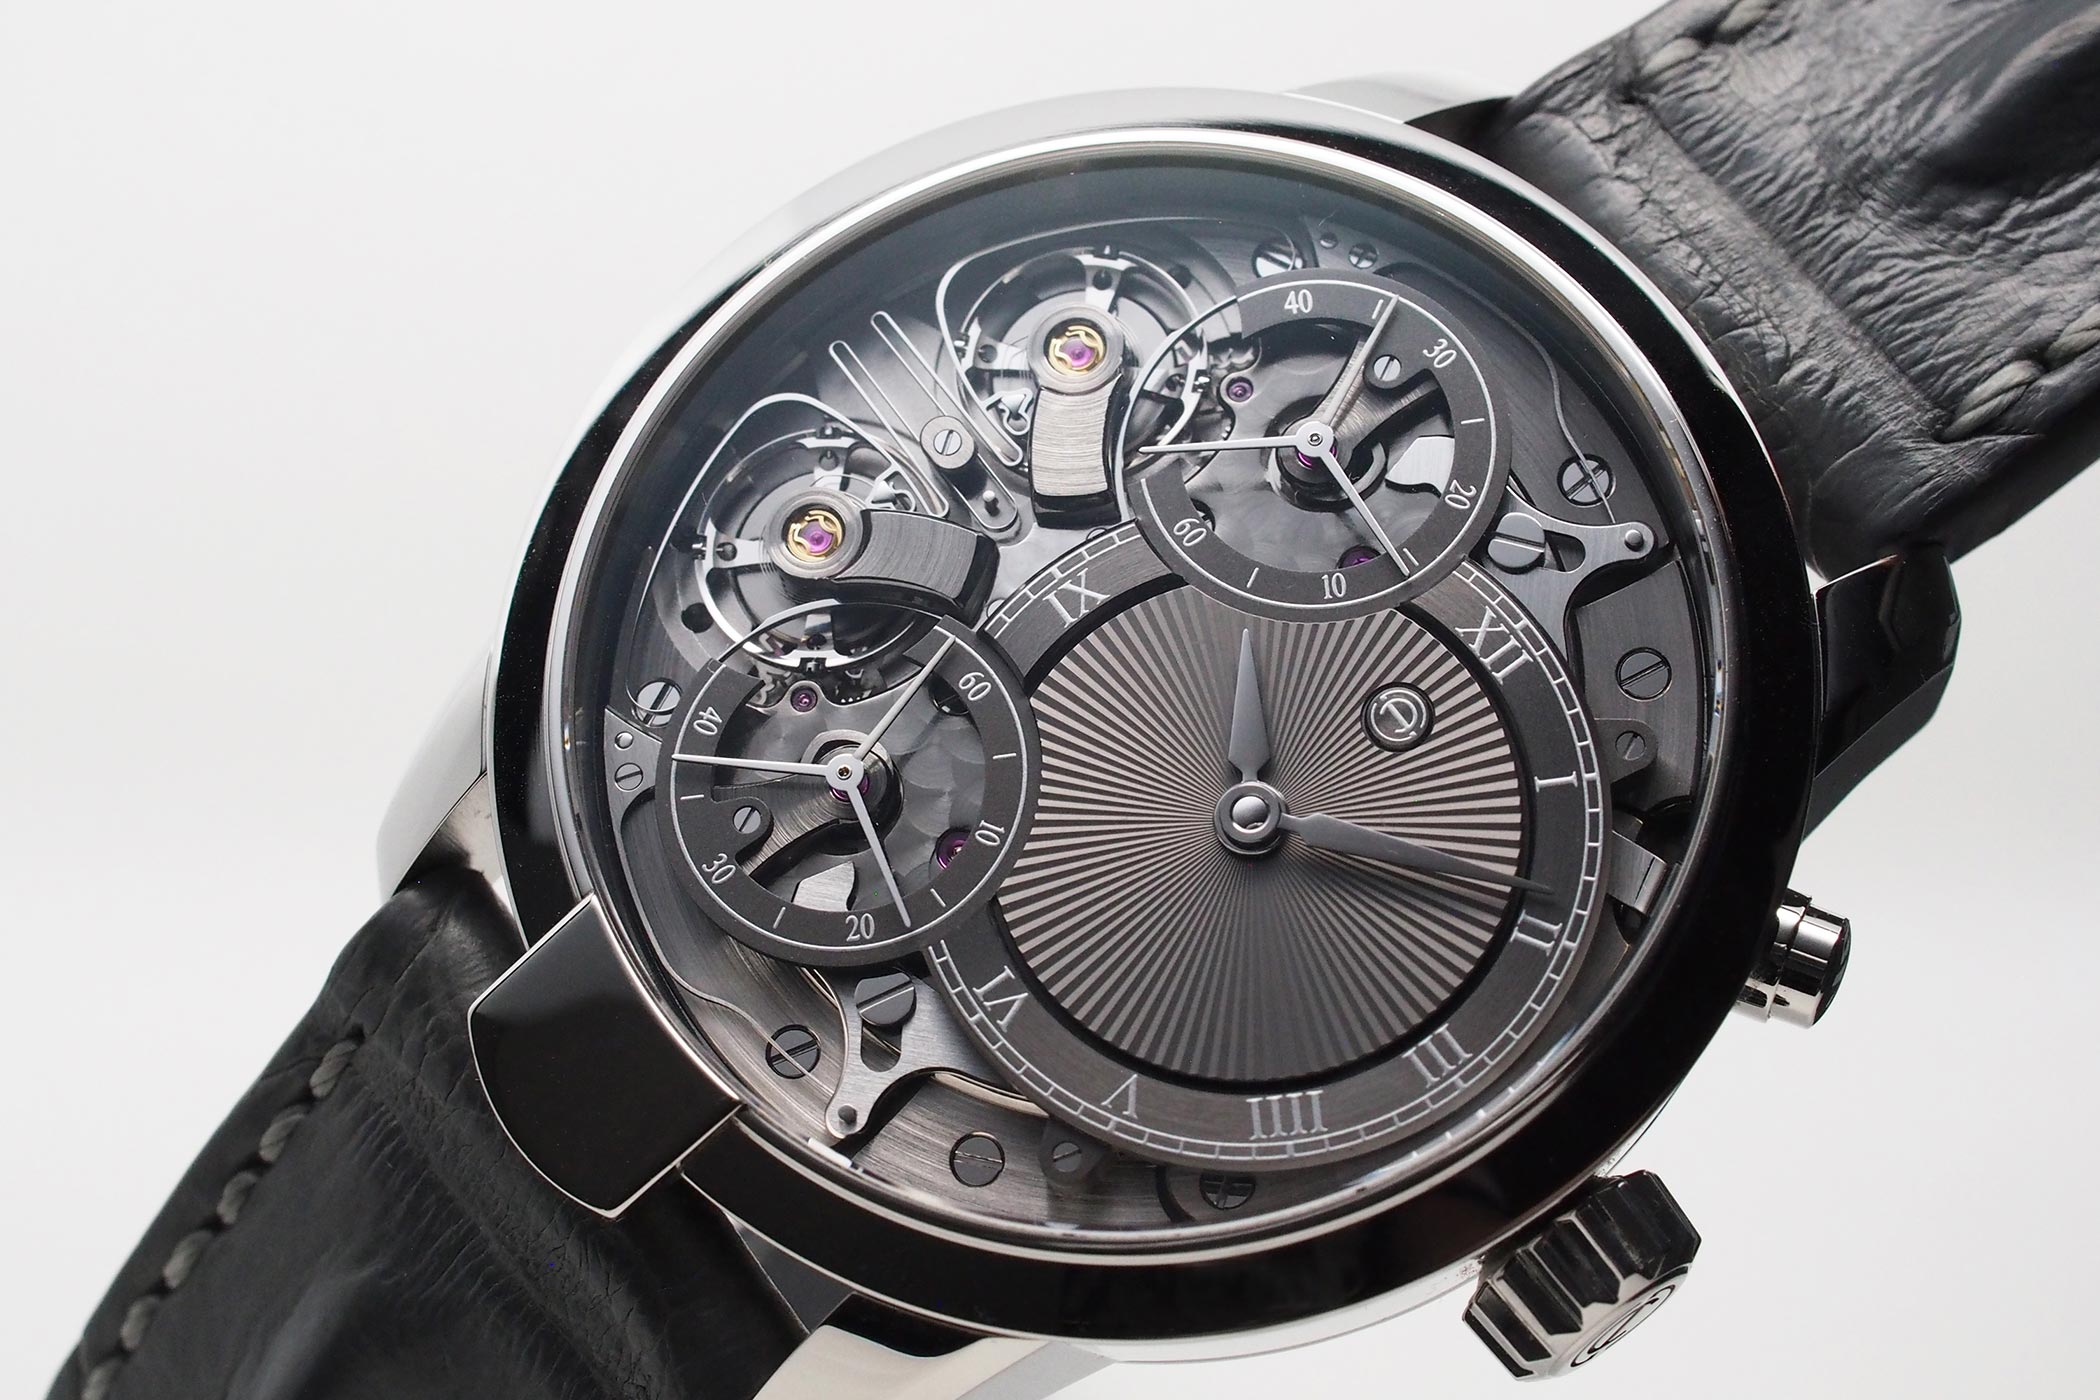 Armin Strom Resonance Voutliainen guilloche dial